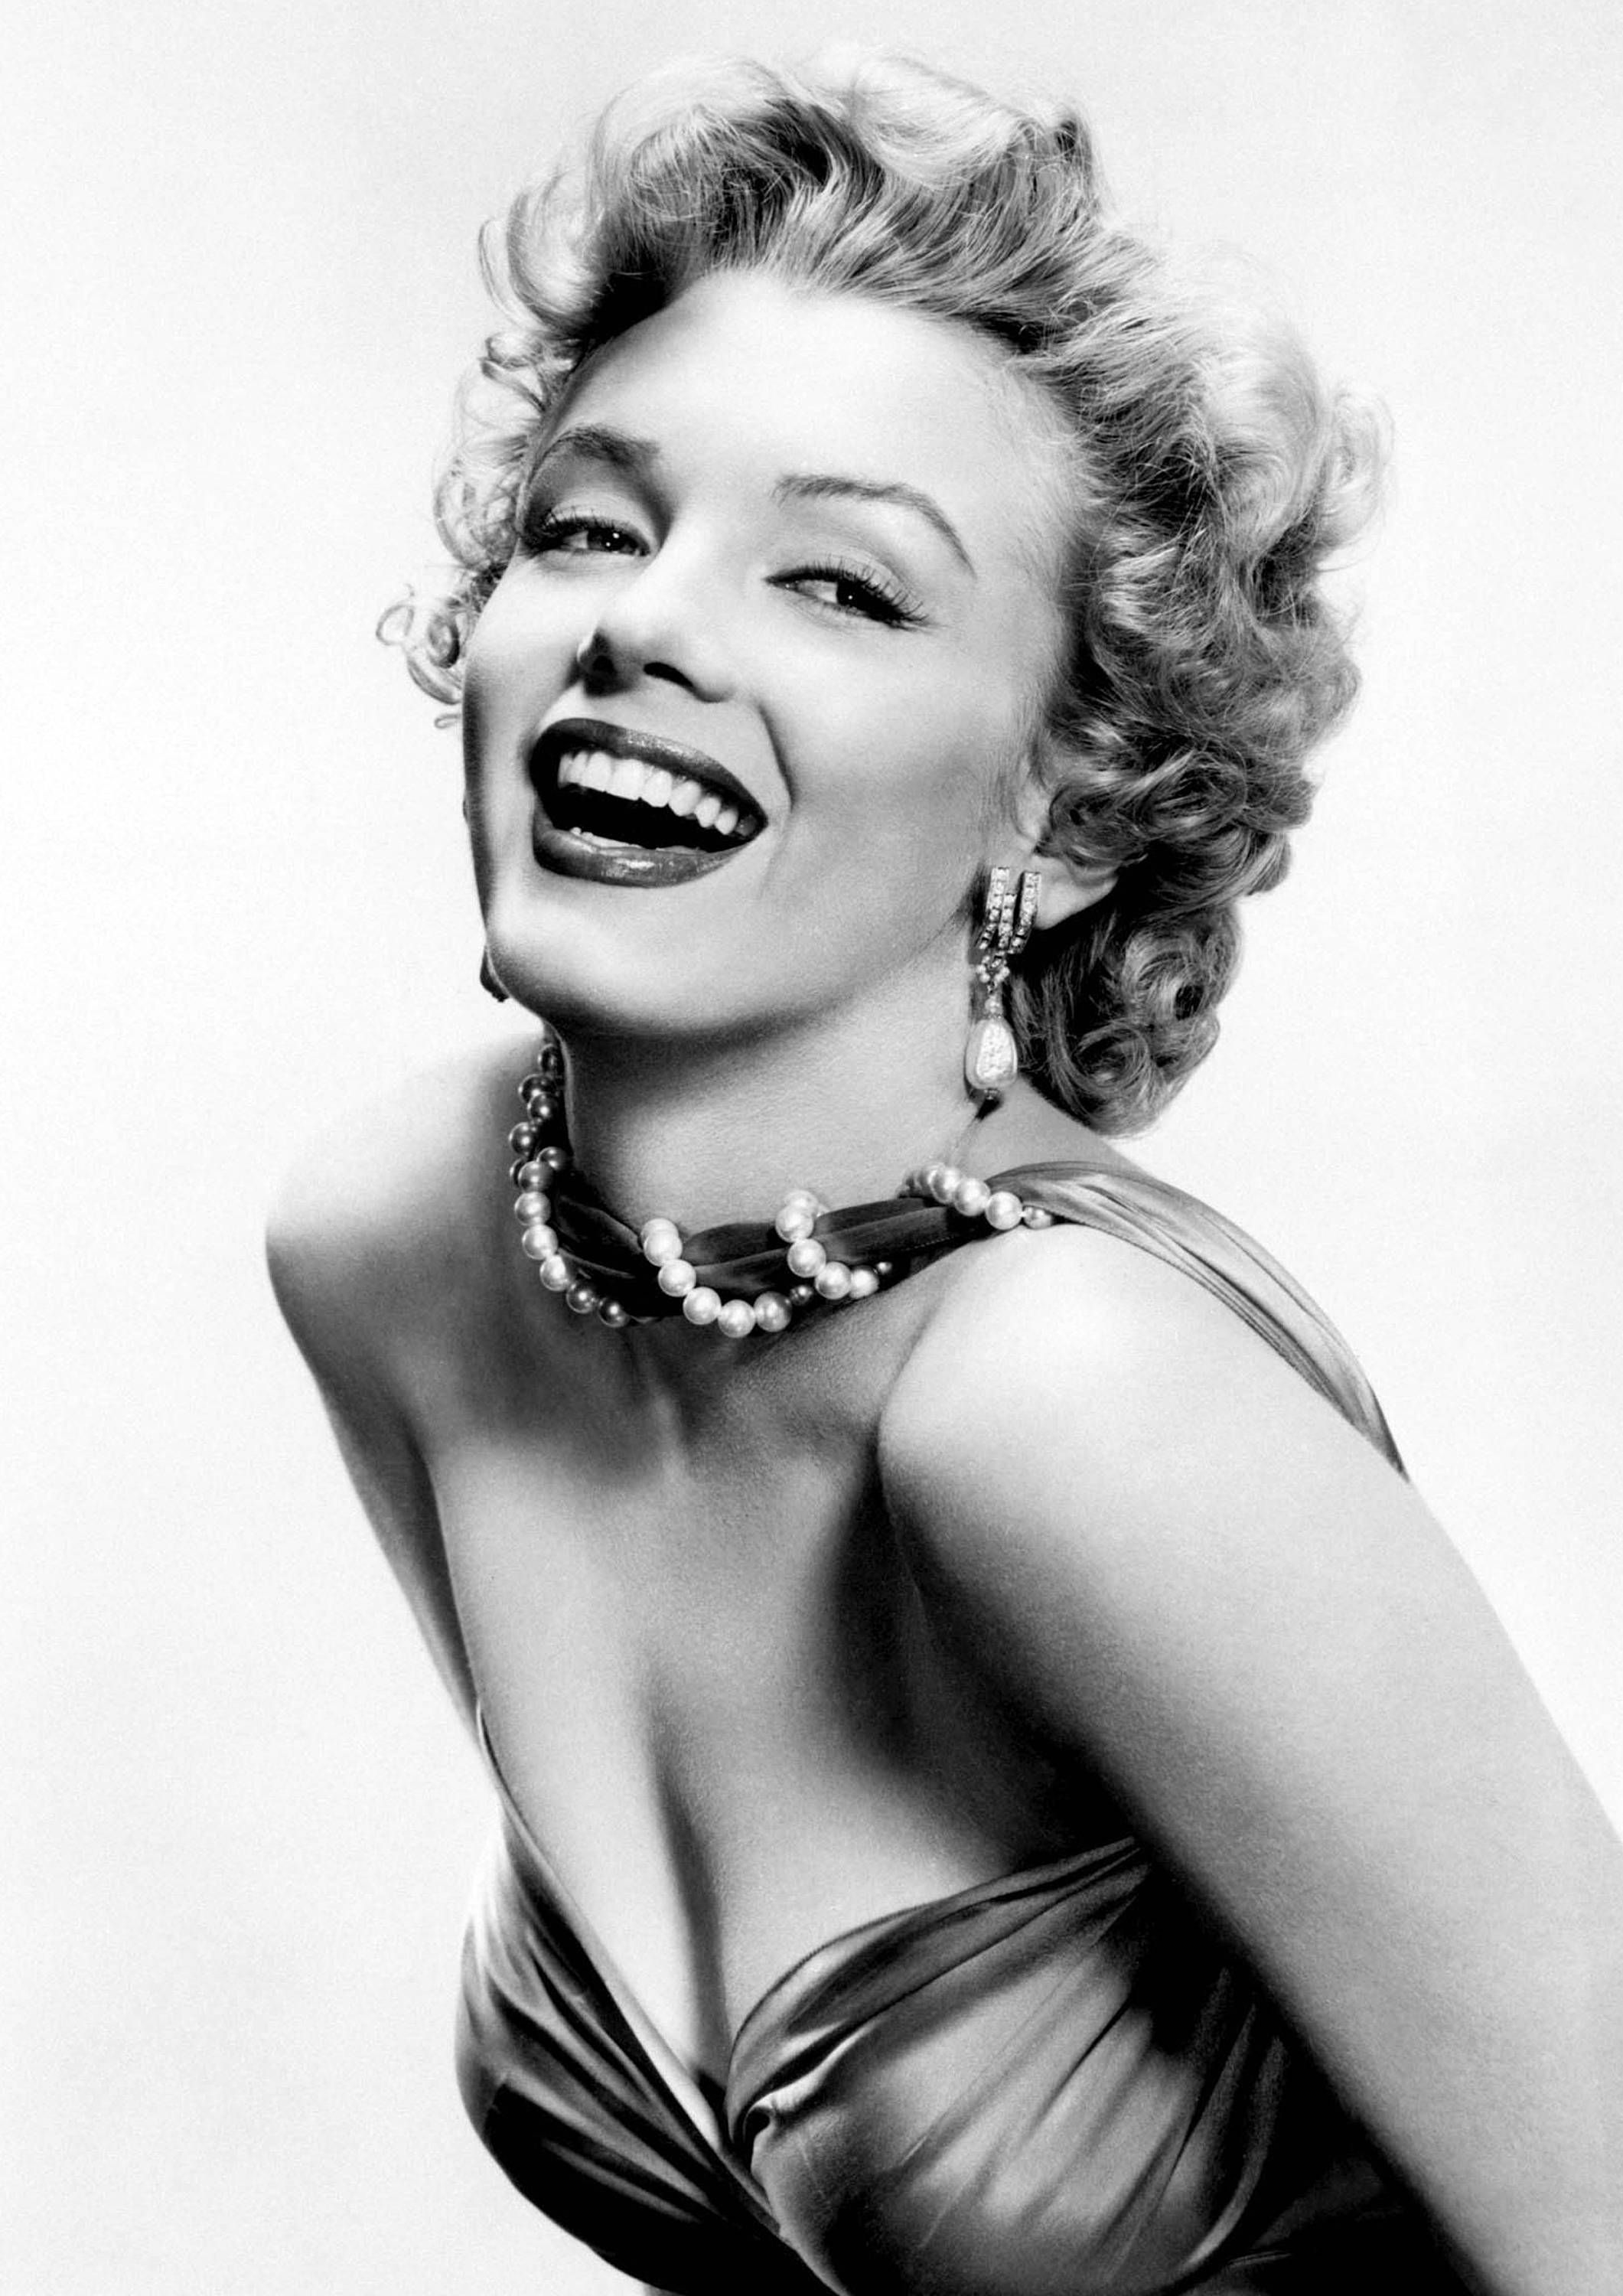 Marilyn Monroe Monochrome Photographic Print 51 (A4 Size - 210mm x ...